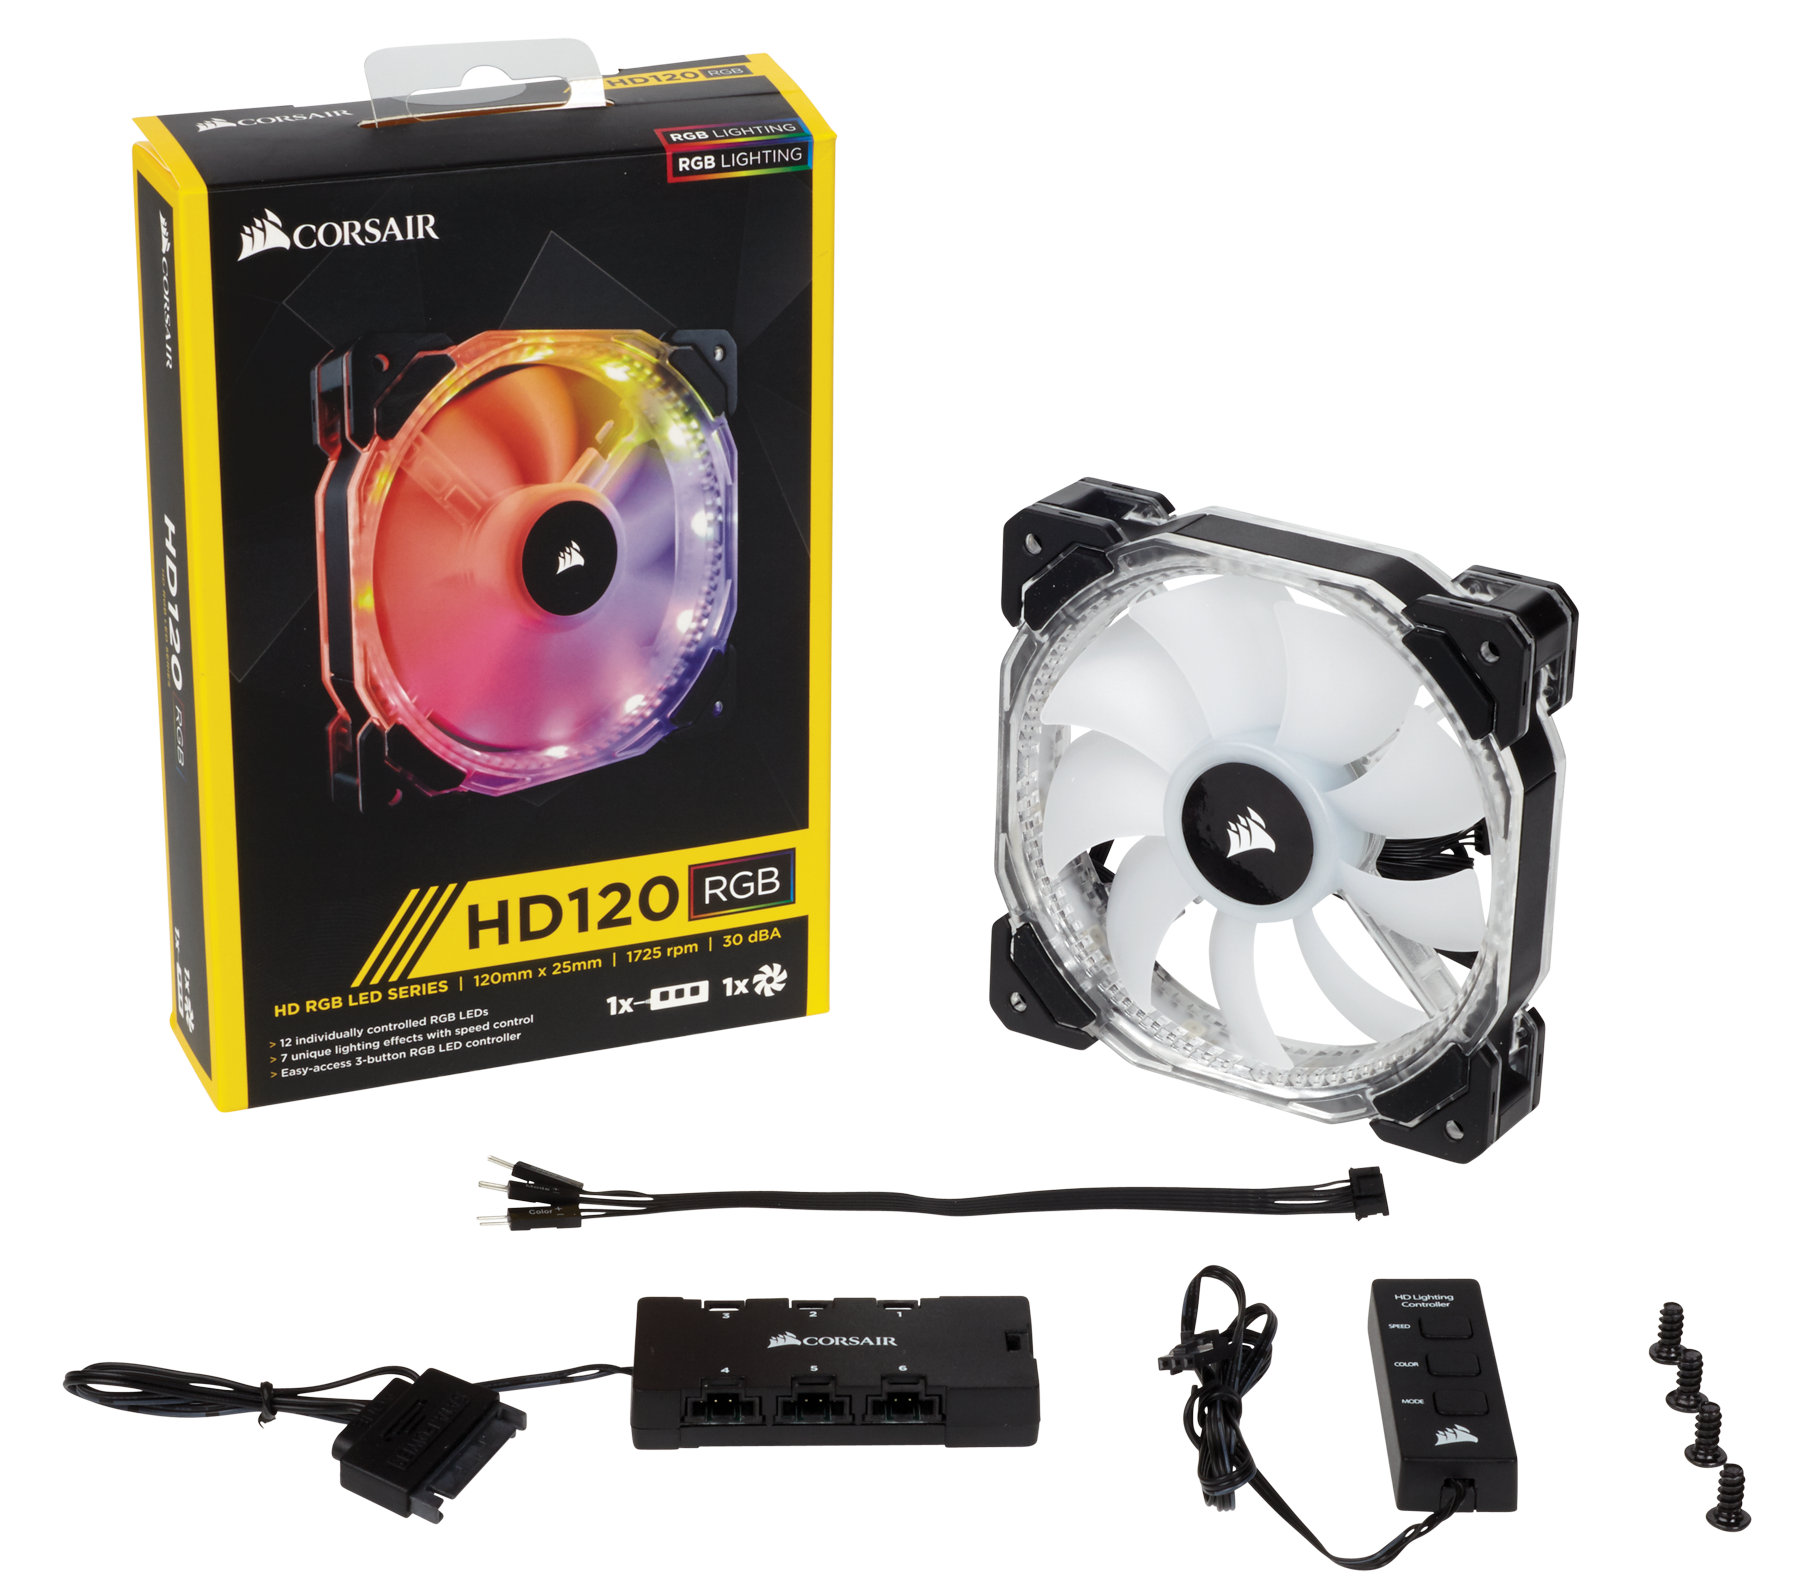 Corsair Hd Series Hd120 Rgb Led 120mm High Performance Dc Fan Controller Takes Bare Bones Approach Analog Content From Individually Addressable Pwm Case Co 9050067 Ww 3 Pack